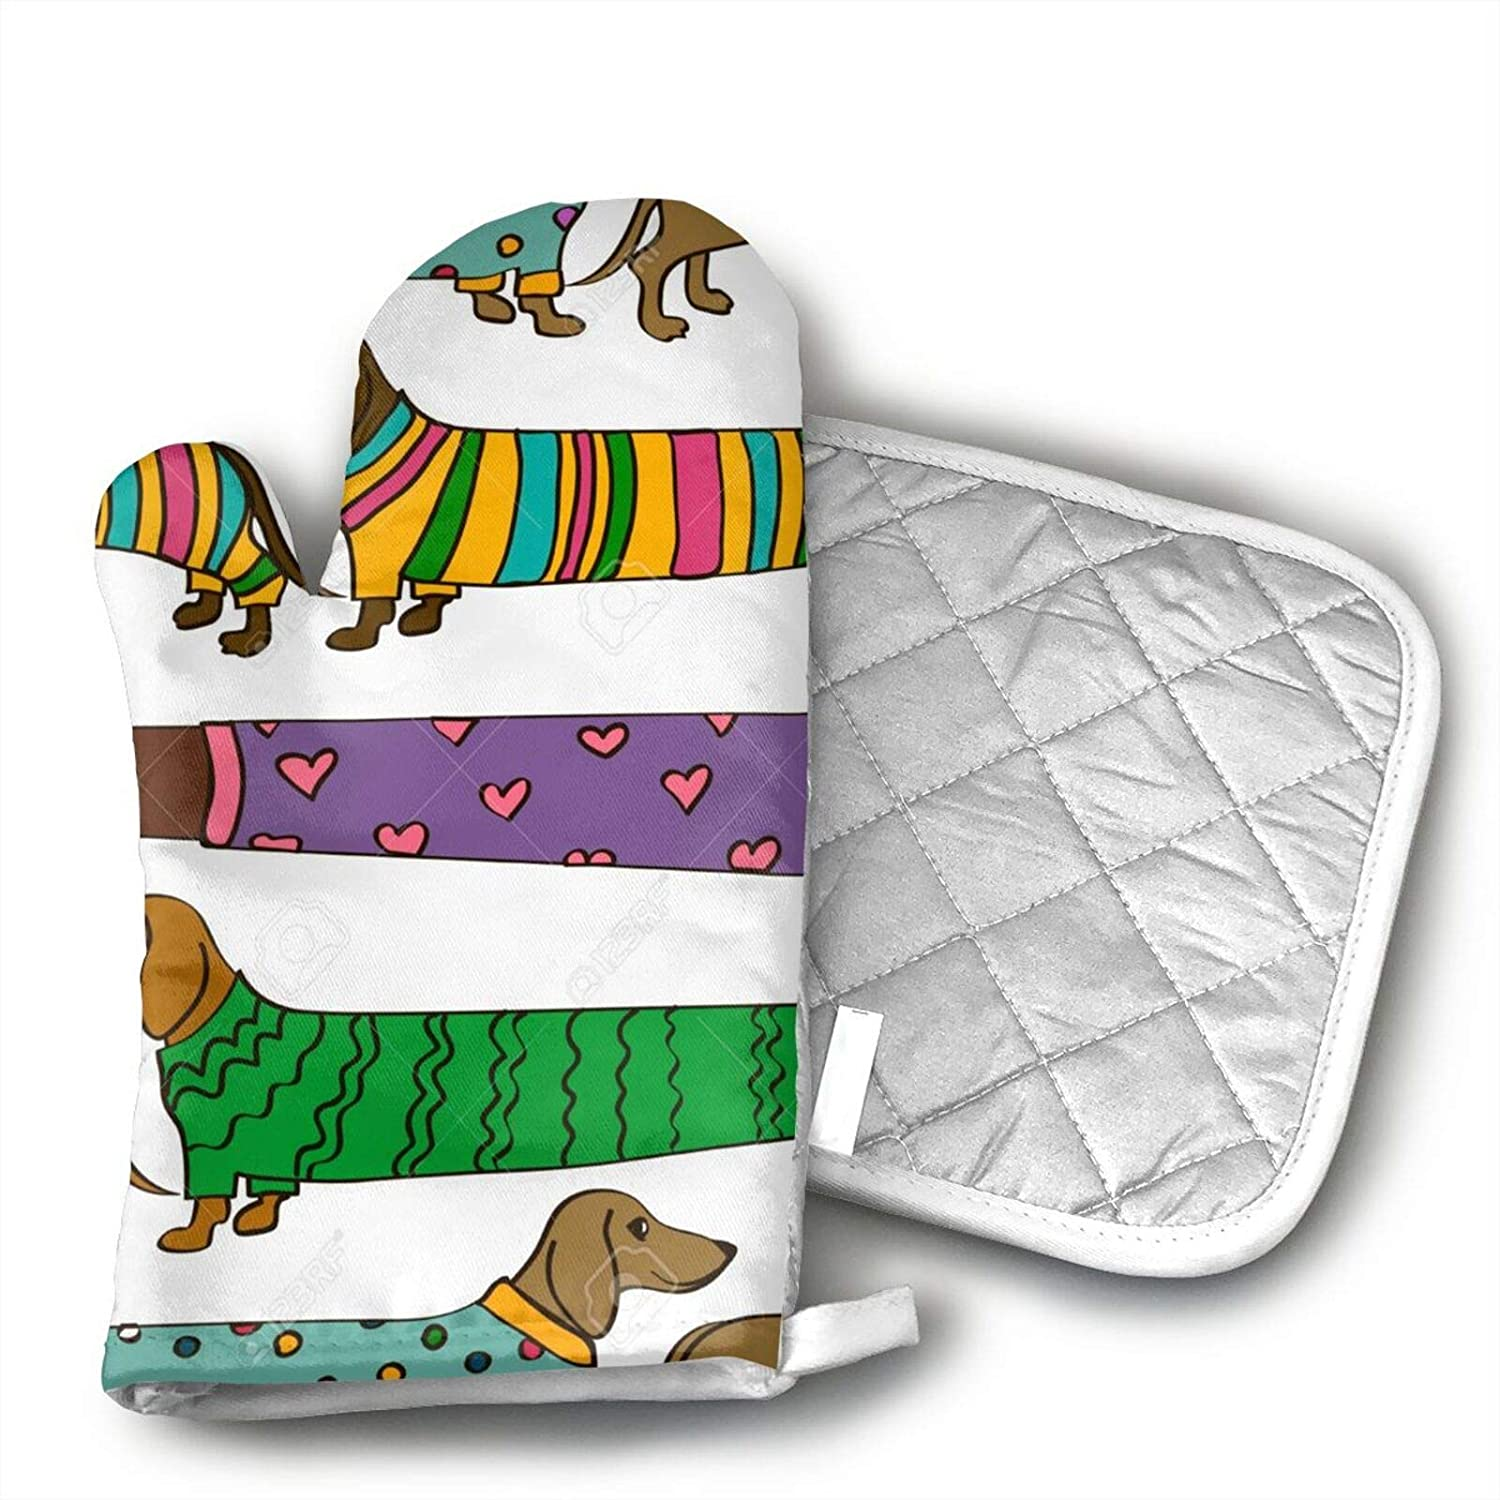 Funny Cartoon Long Dachshund Dogs Oven Mitts and Pot Holders; Non-Slip Heat Resistant Polyester with Gloves and Polyester Cotton Pot Mats